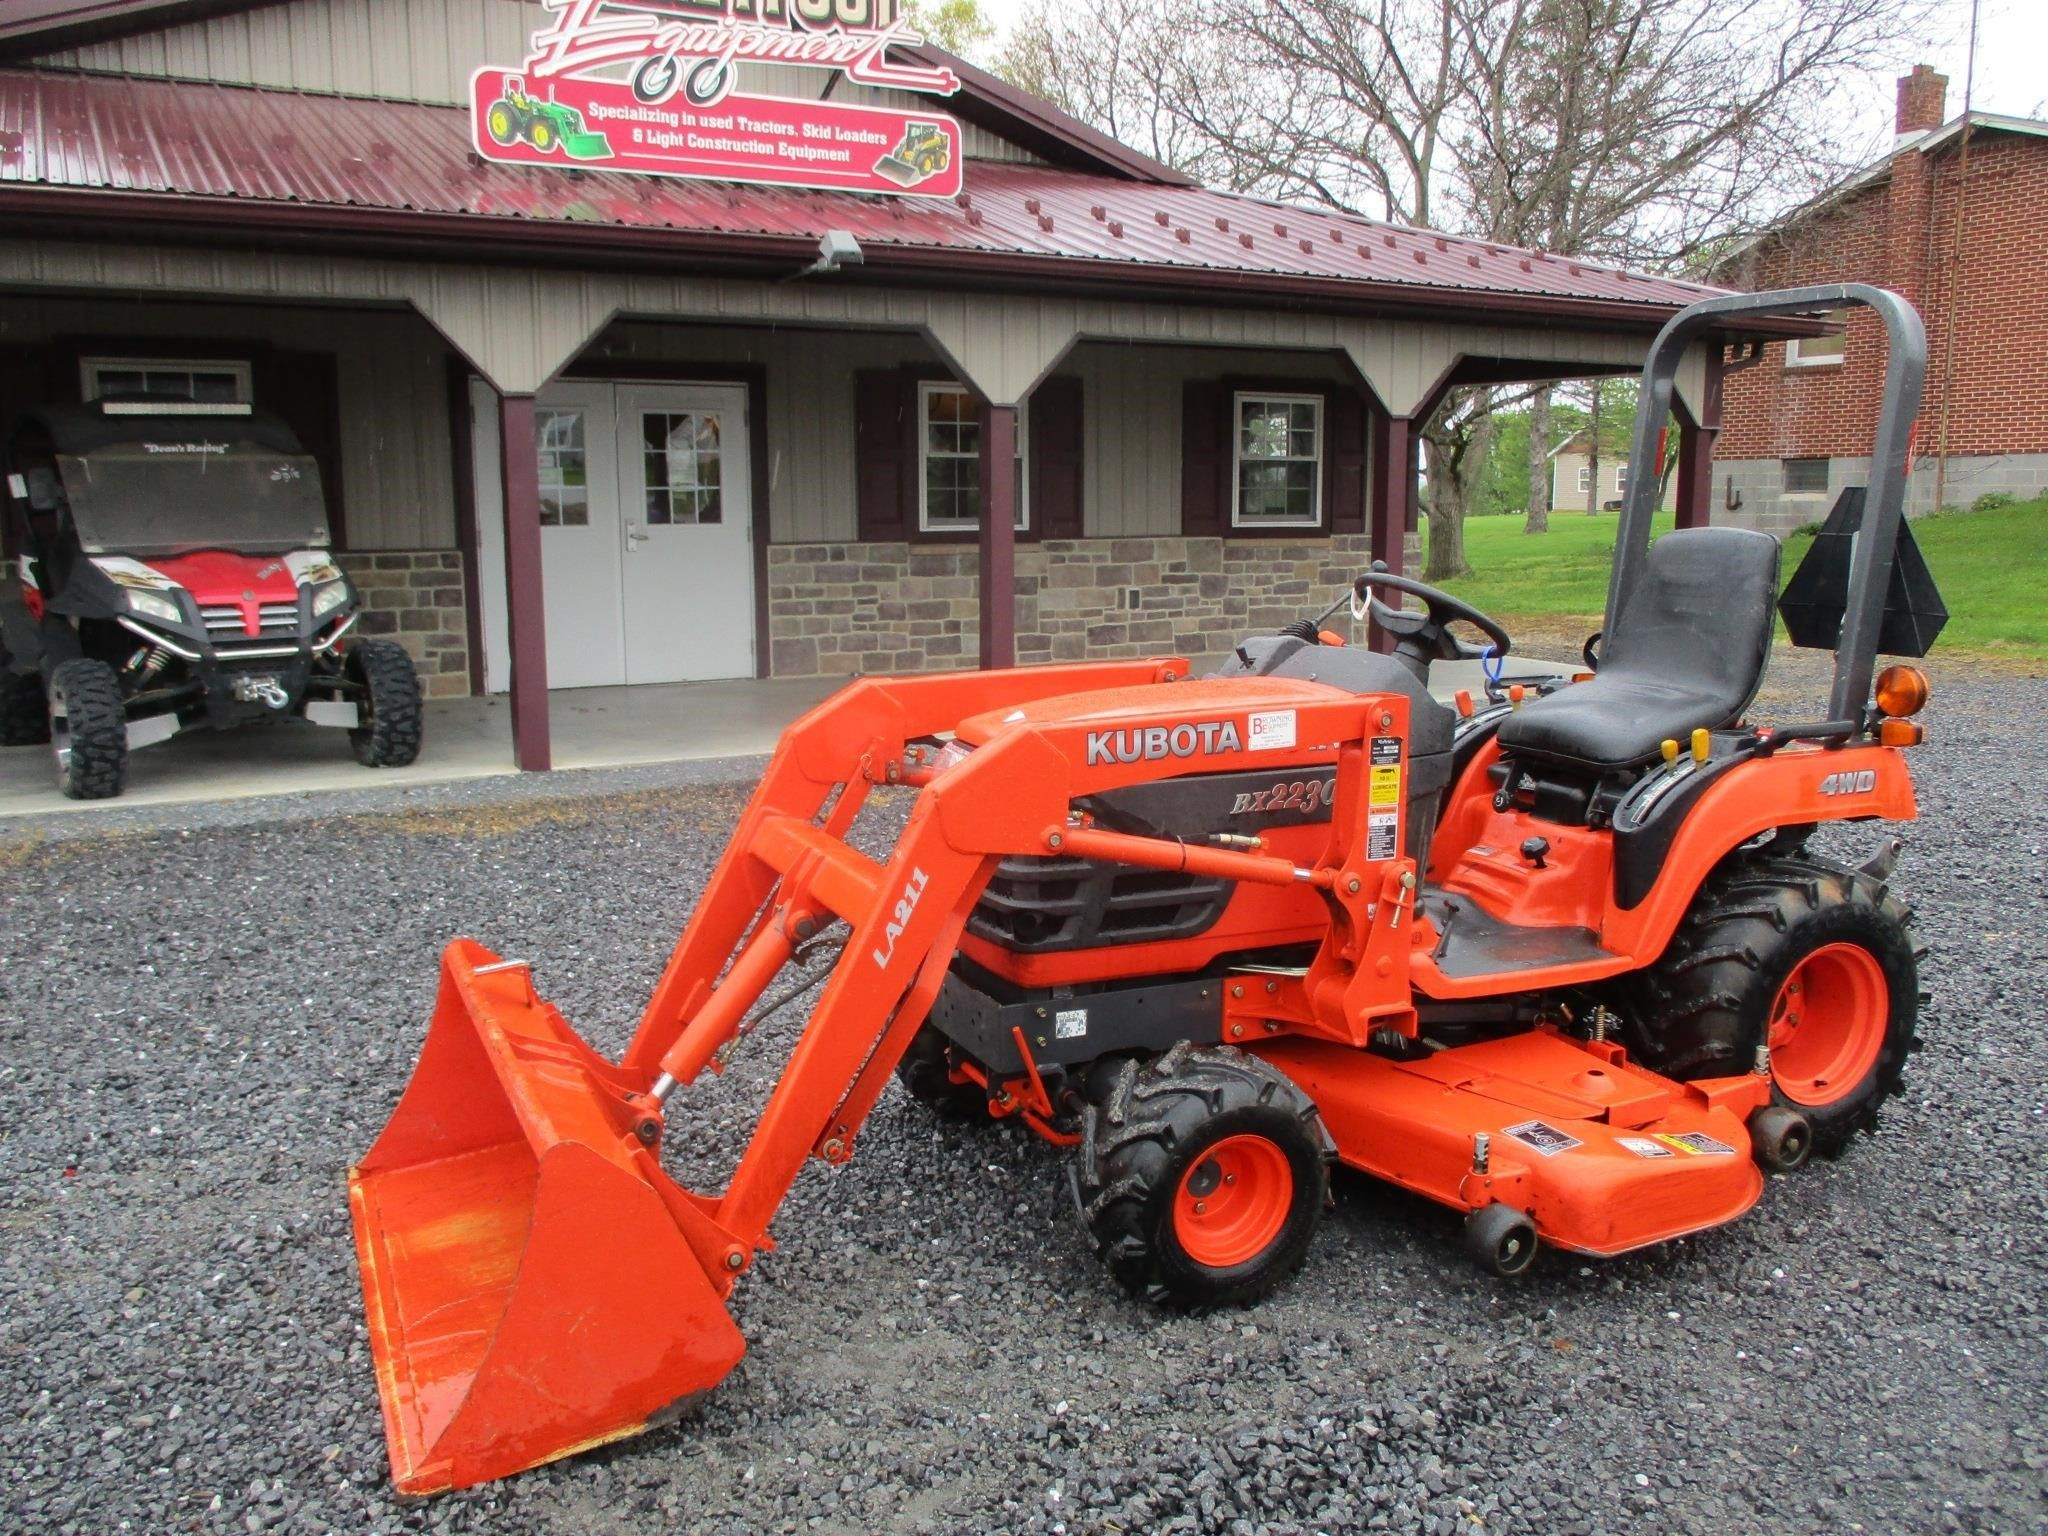 2005 Kubota Bx2230 Tractor Chambersburg Pennsylvania Machinery Pete Tractors For Sale Tractors Compact Tractors For Sale